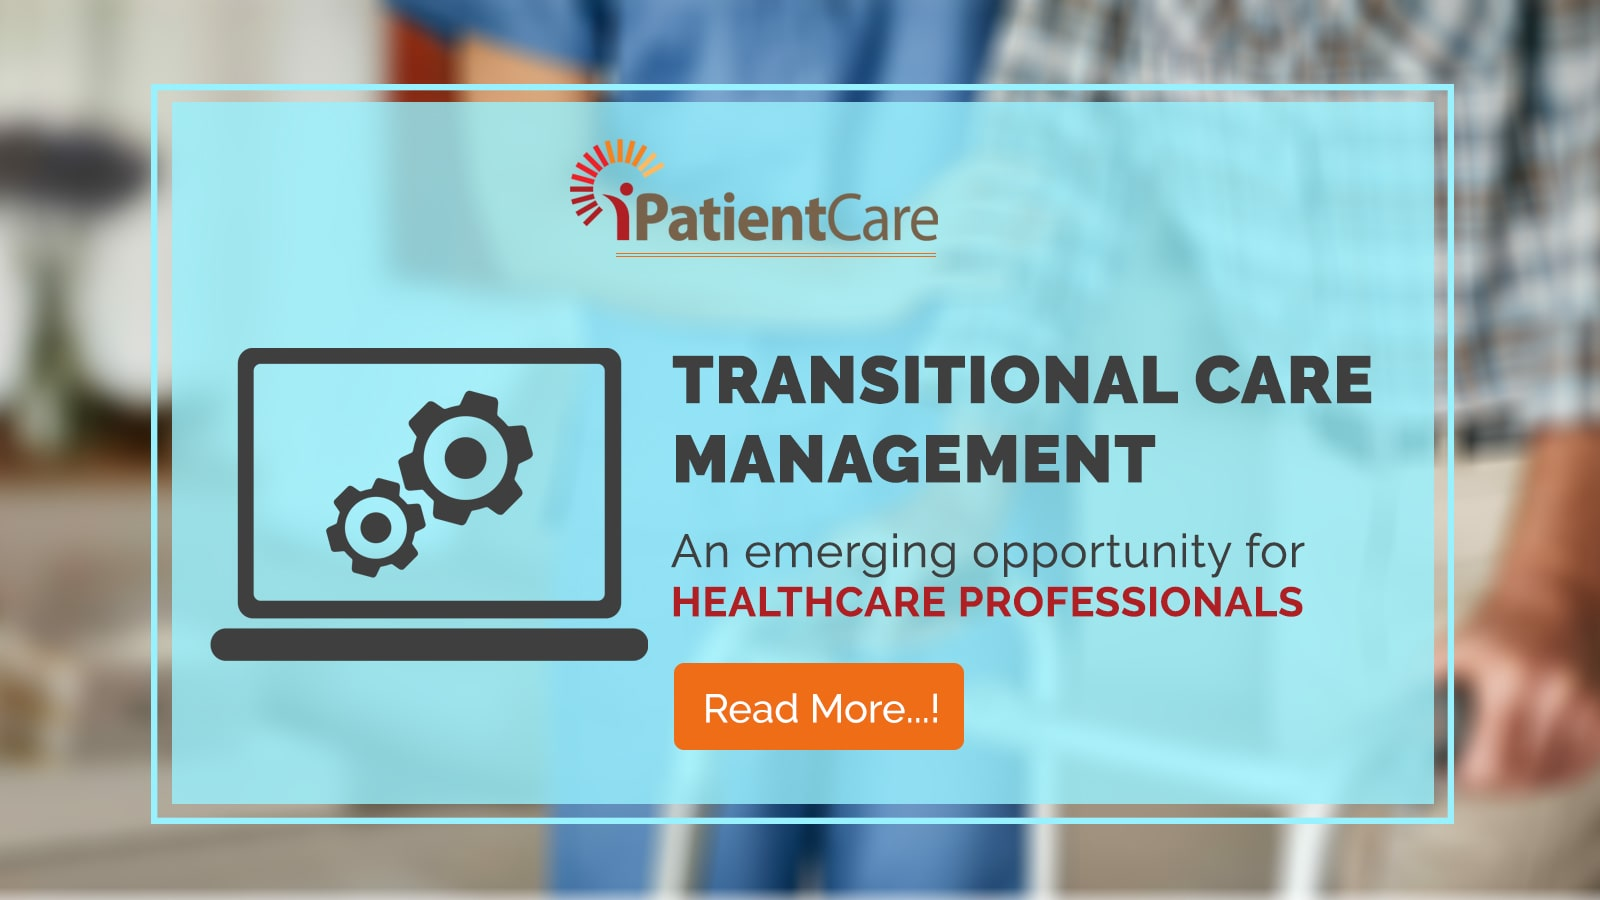 iPatientCare Blog - Transitional Care Management